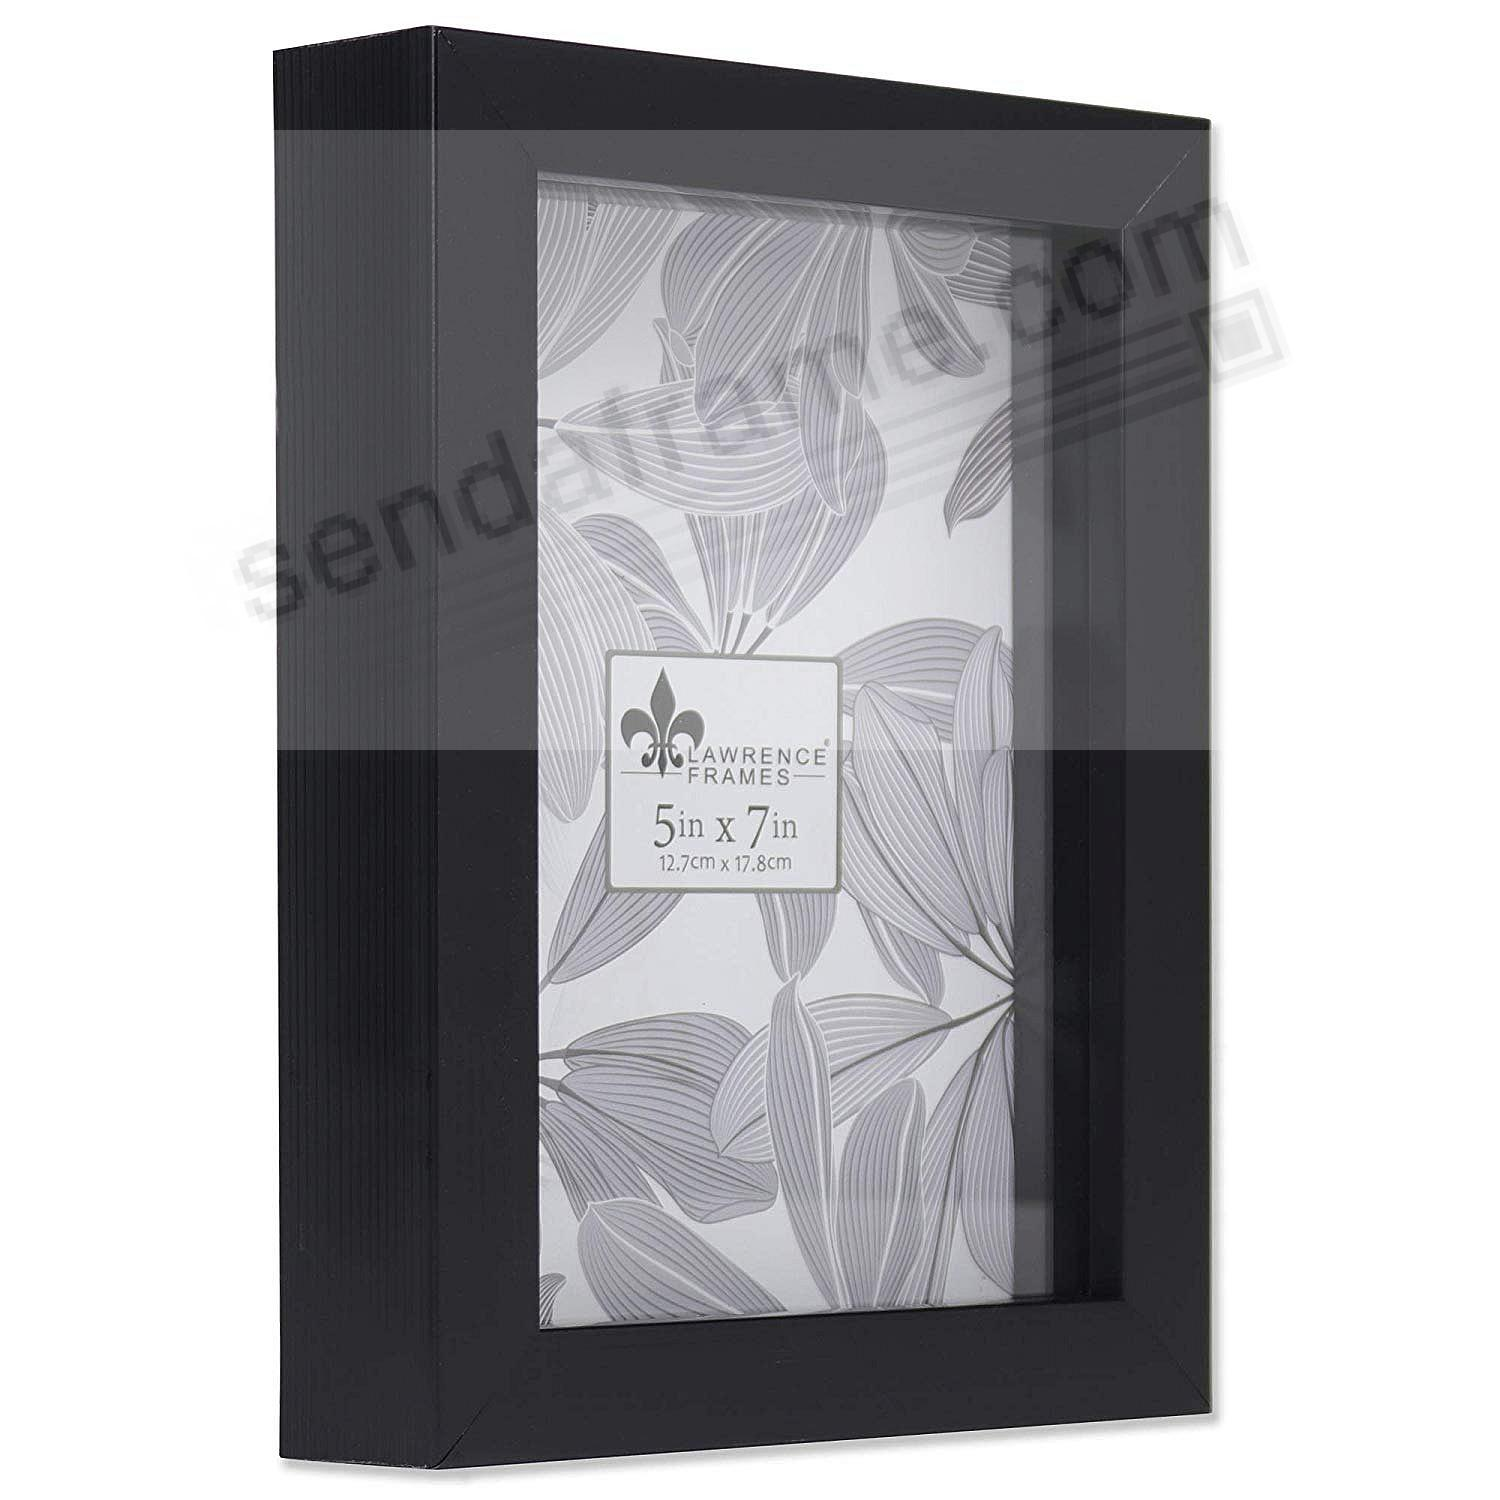 WEATHERED BLACK Shadow Box 5x7 frame ¾in depth by Lawrence®